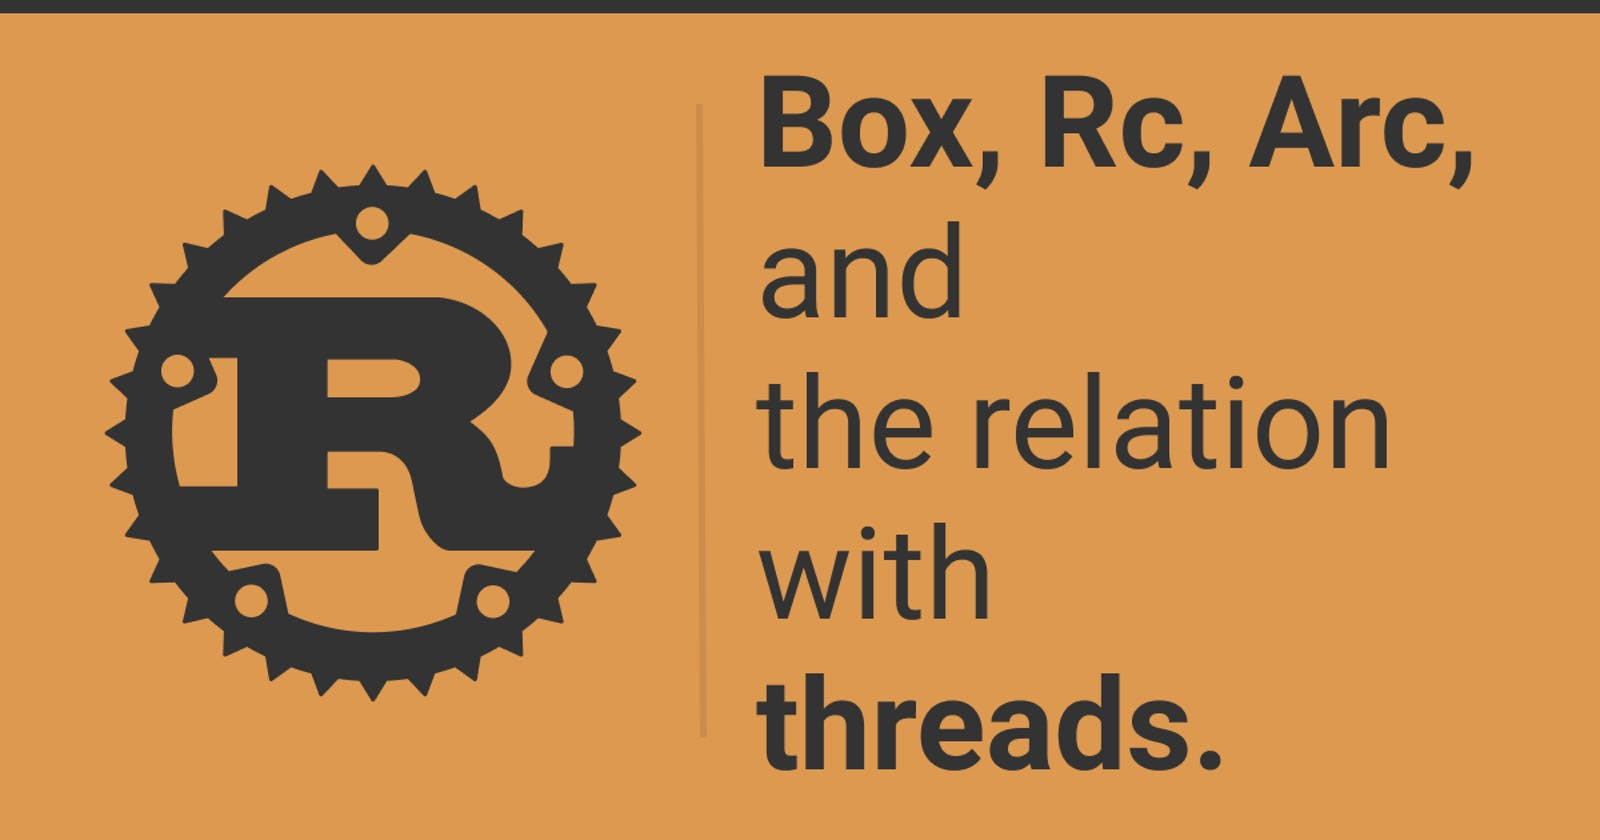 Box, Rc, Arc, and the relation with threads.